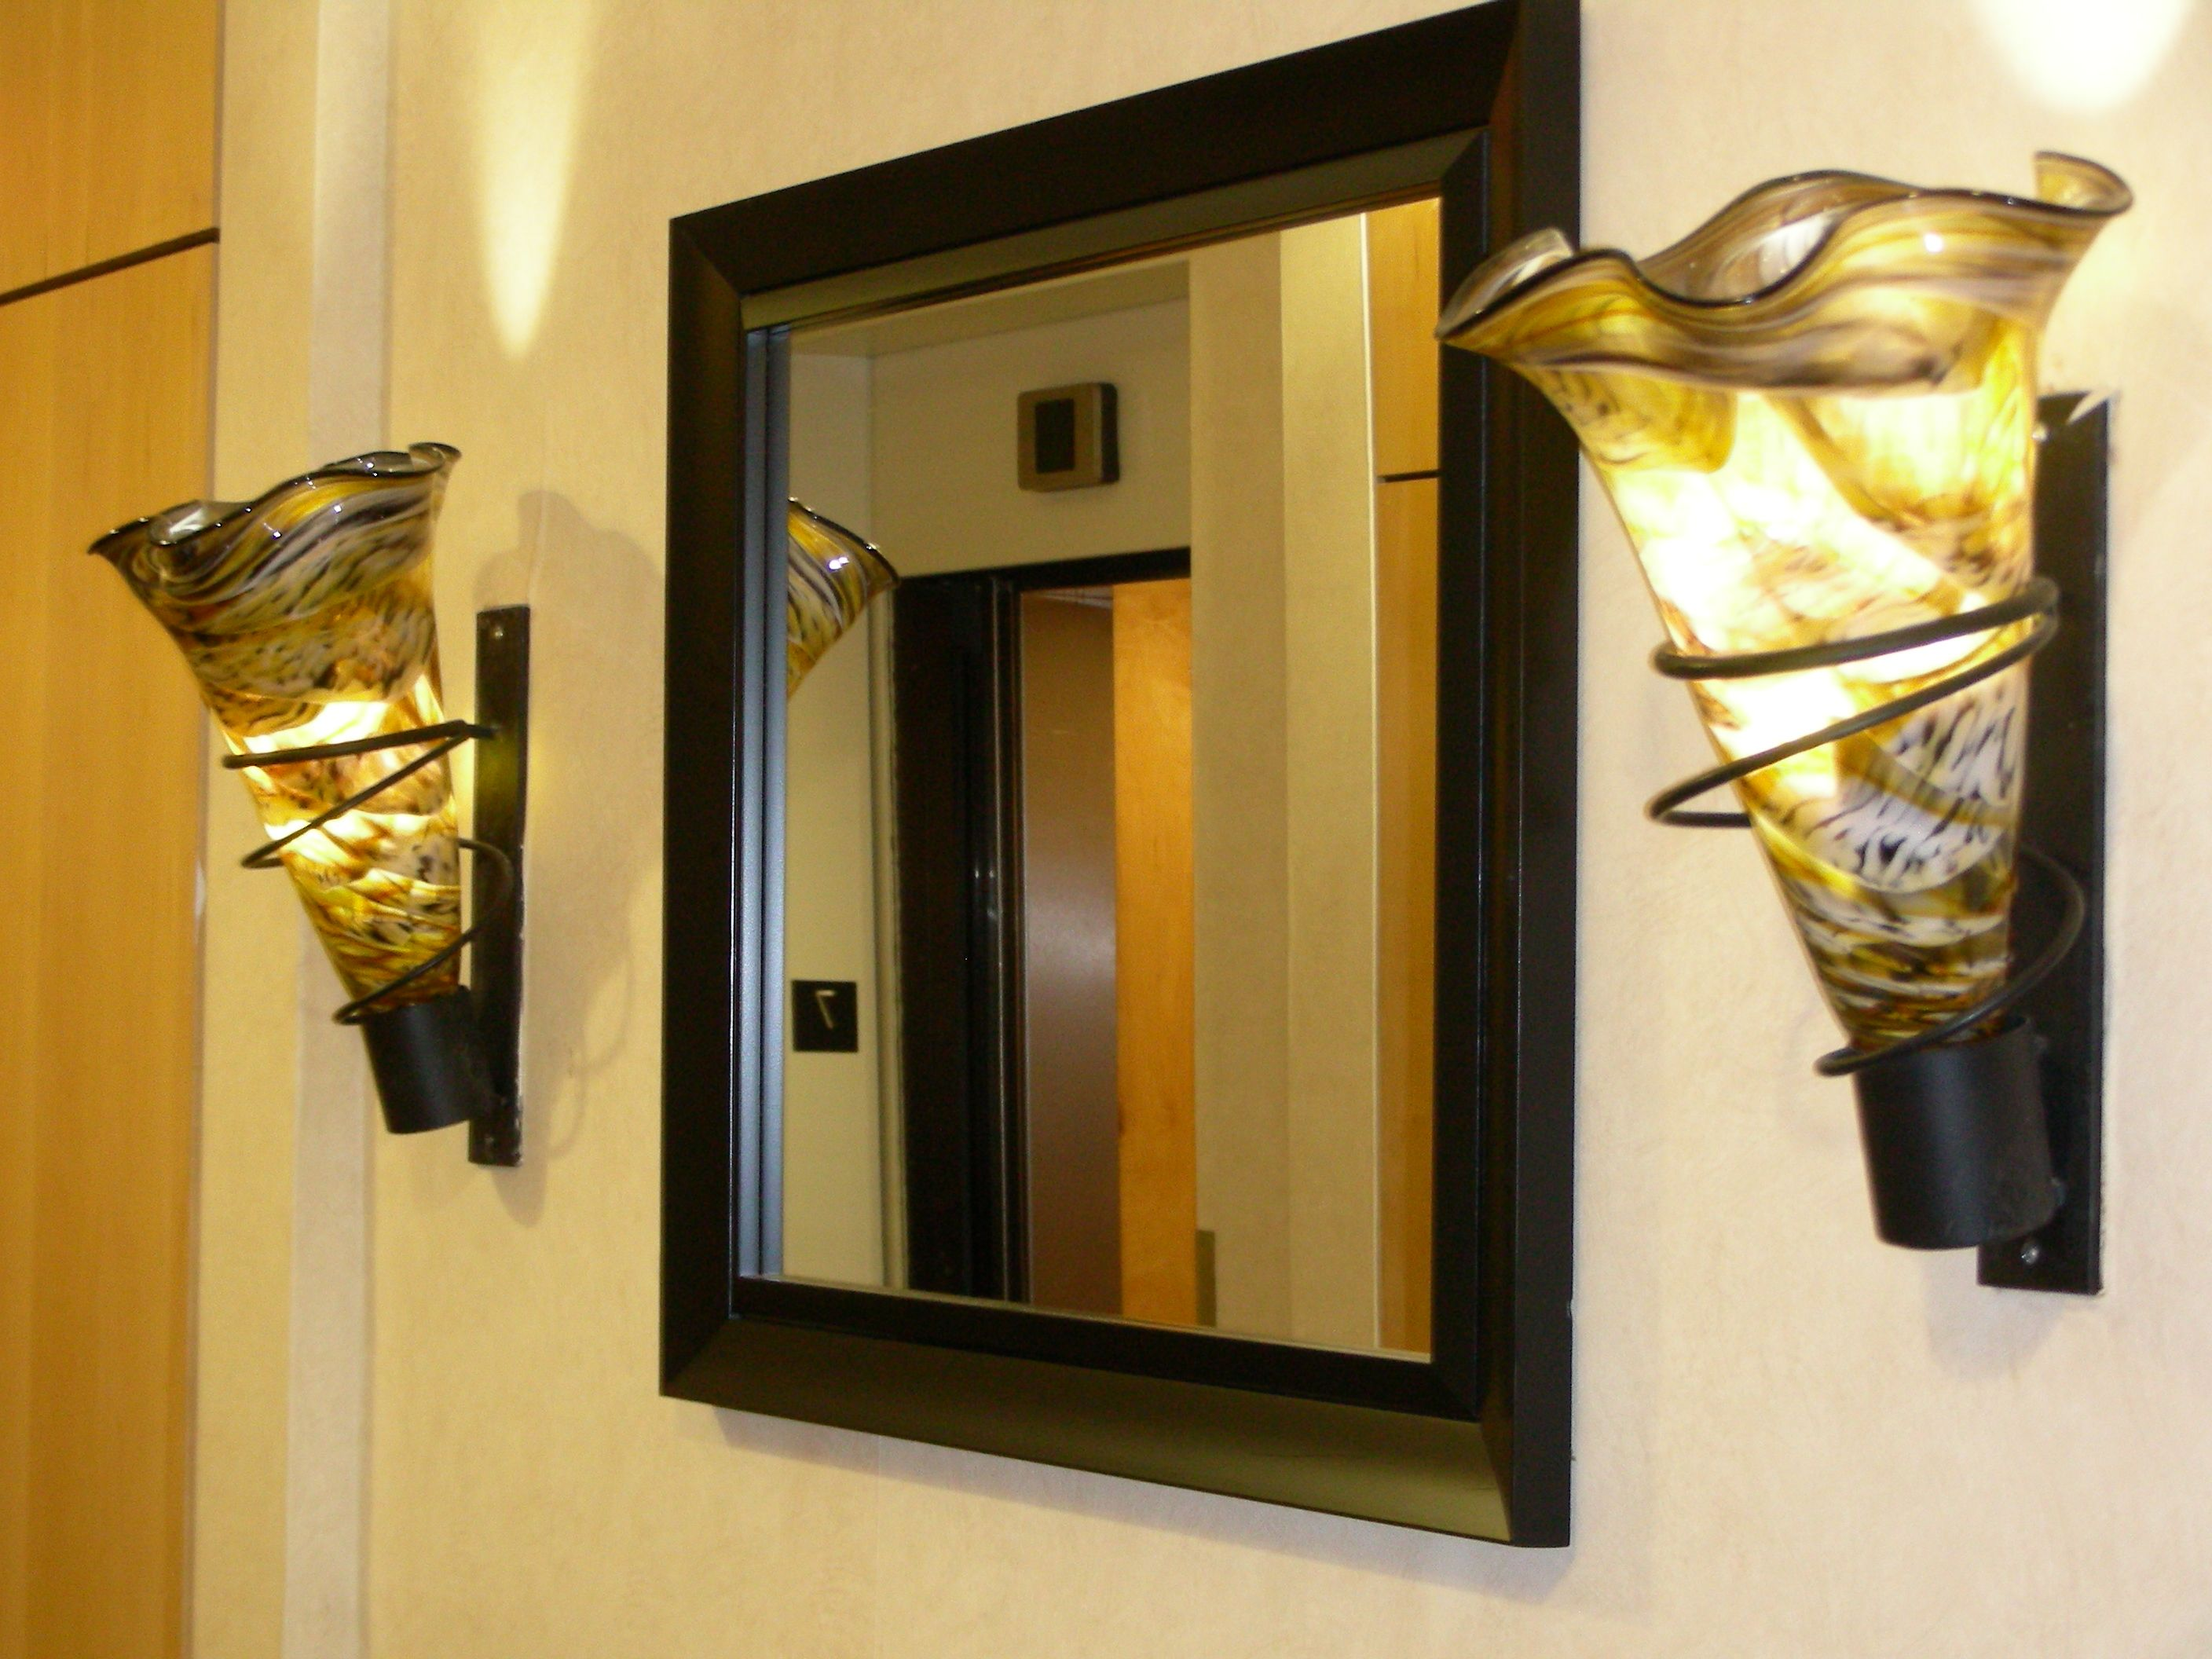 wall sconce ideas to put next to our mirror. | ~Beds & Nooks ...